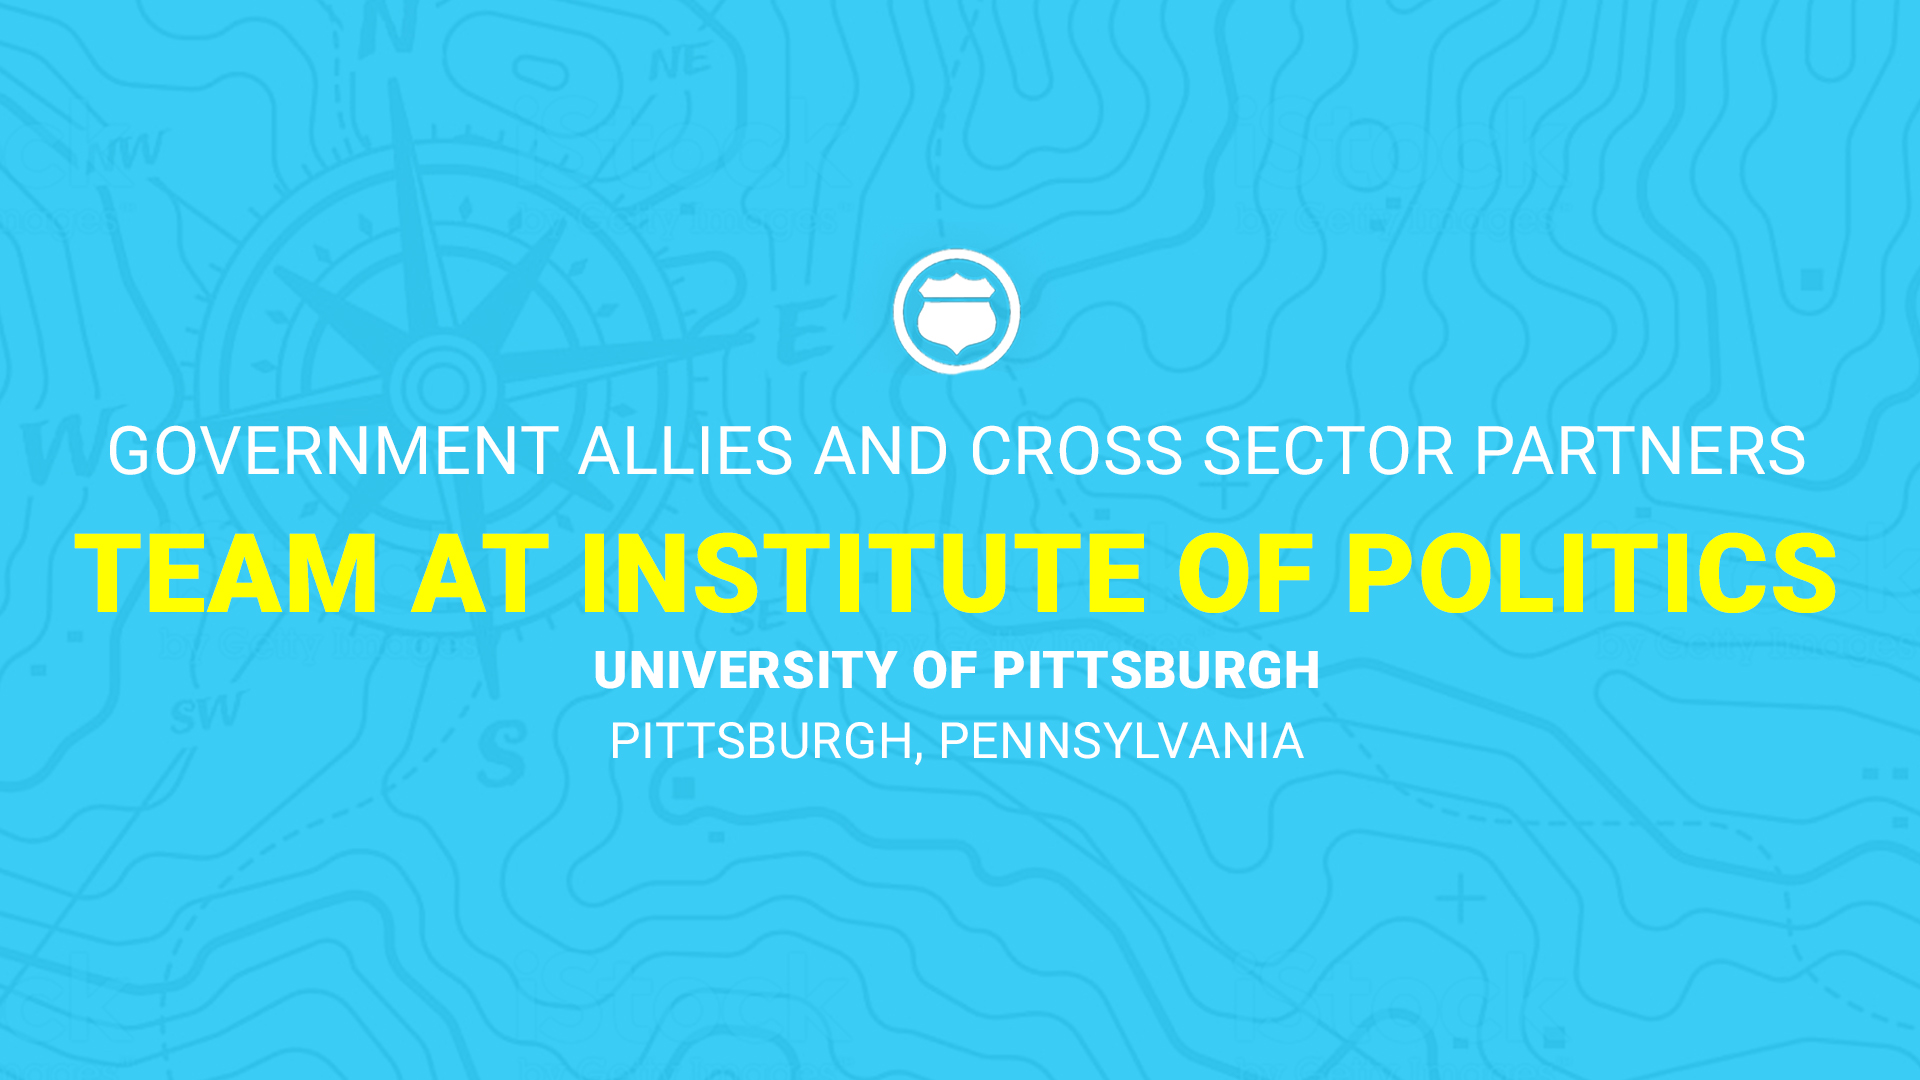 Finalist: Team at Institute of Politics, University of Pittsburgh, Pittsburgh, Pennsylvania